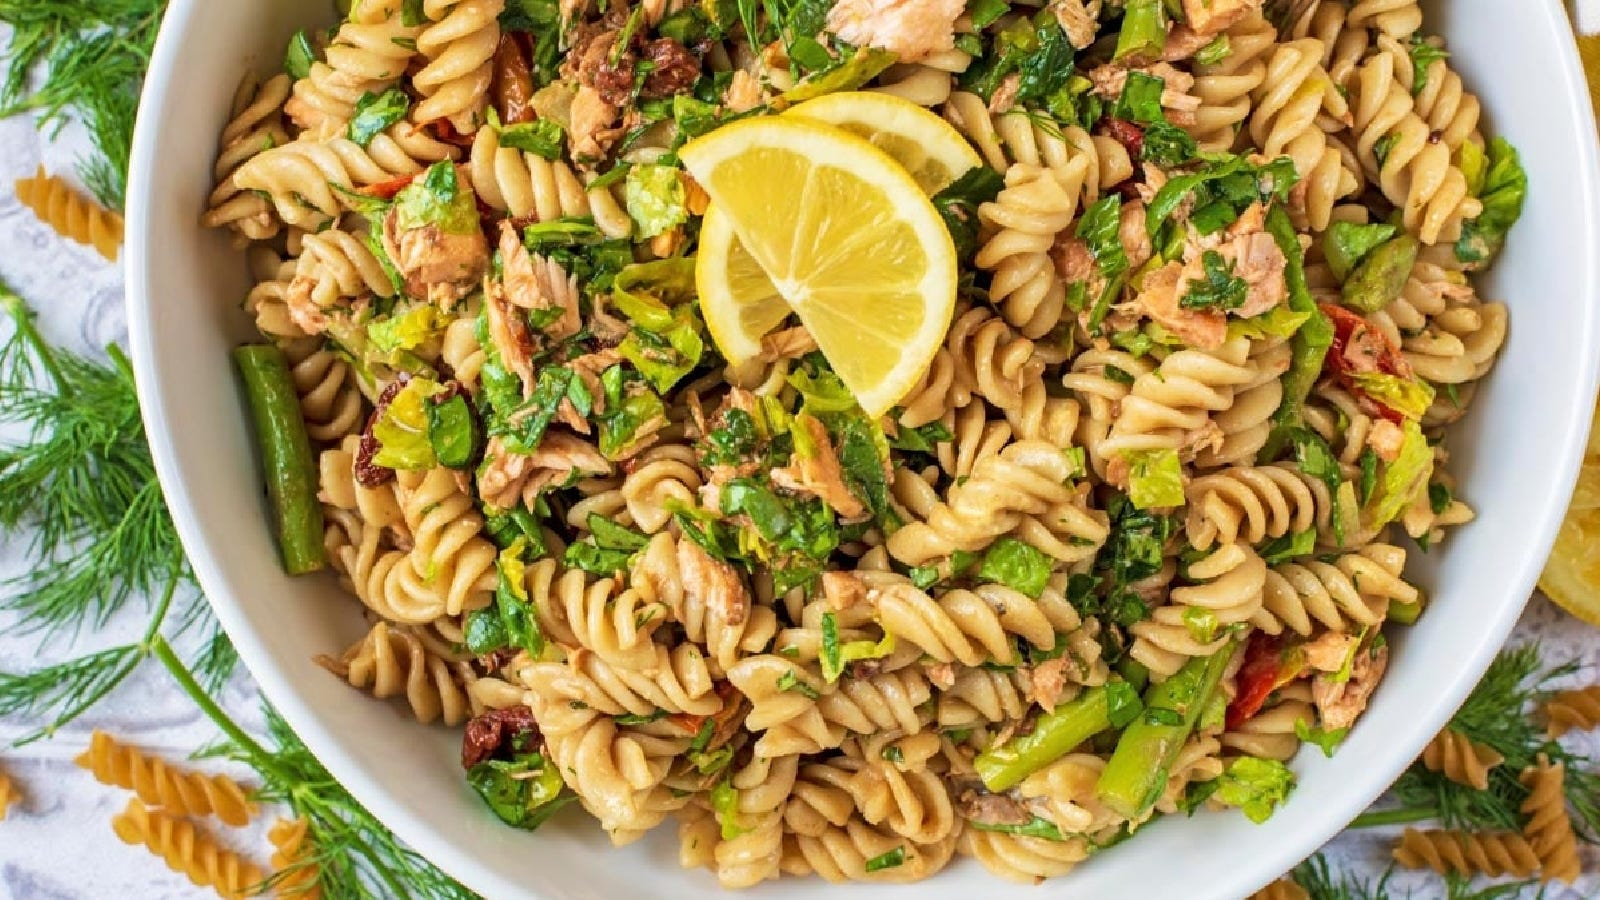 A large bowl full of rotini pasta salad with basil, asparagus and salmon garnished with lemon.